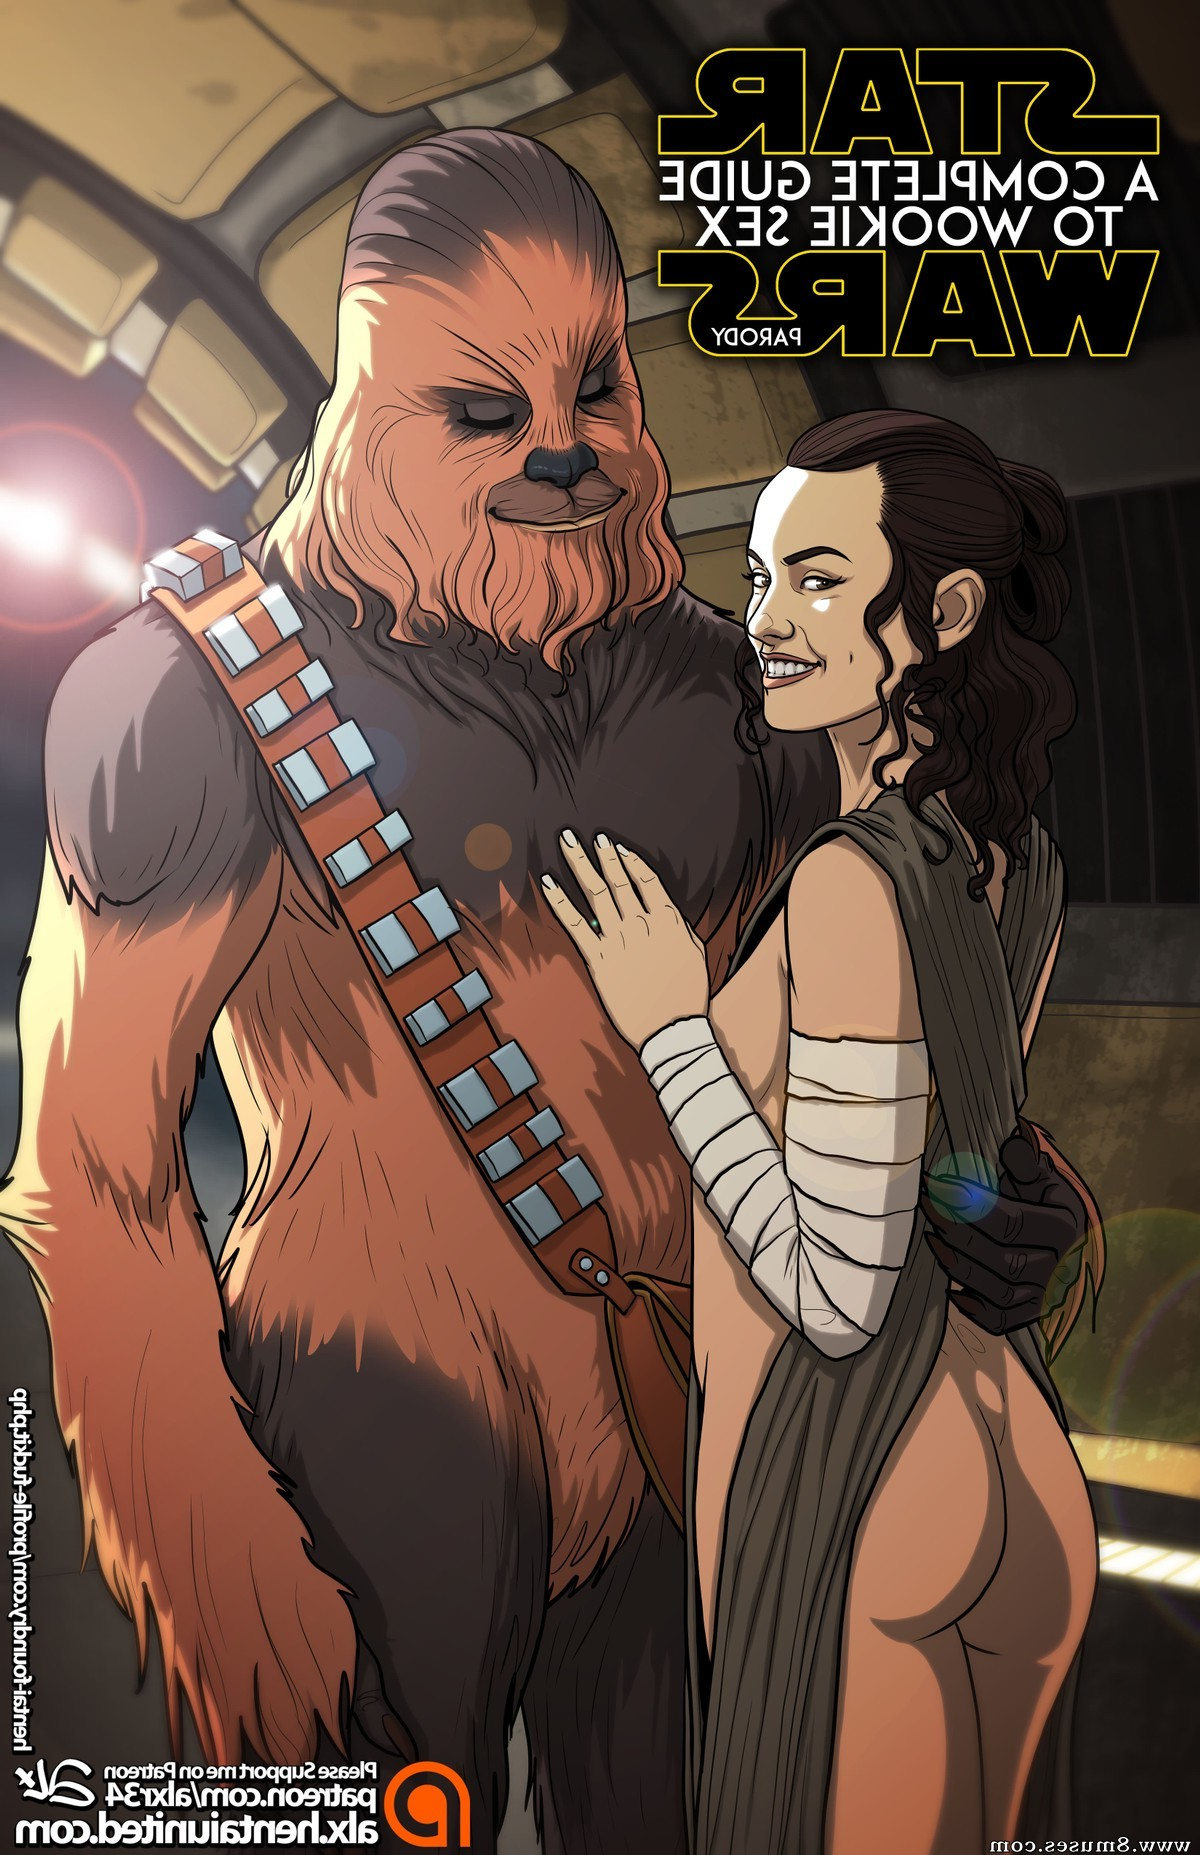 Fuckit-Alx-Comics/A-Complete-Guide-to-Wookie-Sex/Issue-1 A_Complete_Guide_to_Wookie_Sex_-_Issue_1.jpg